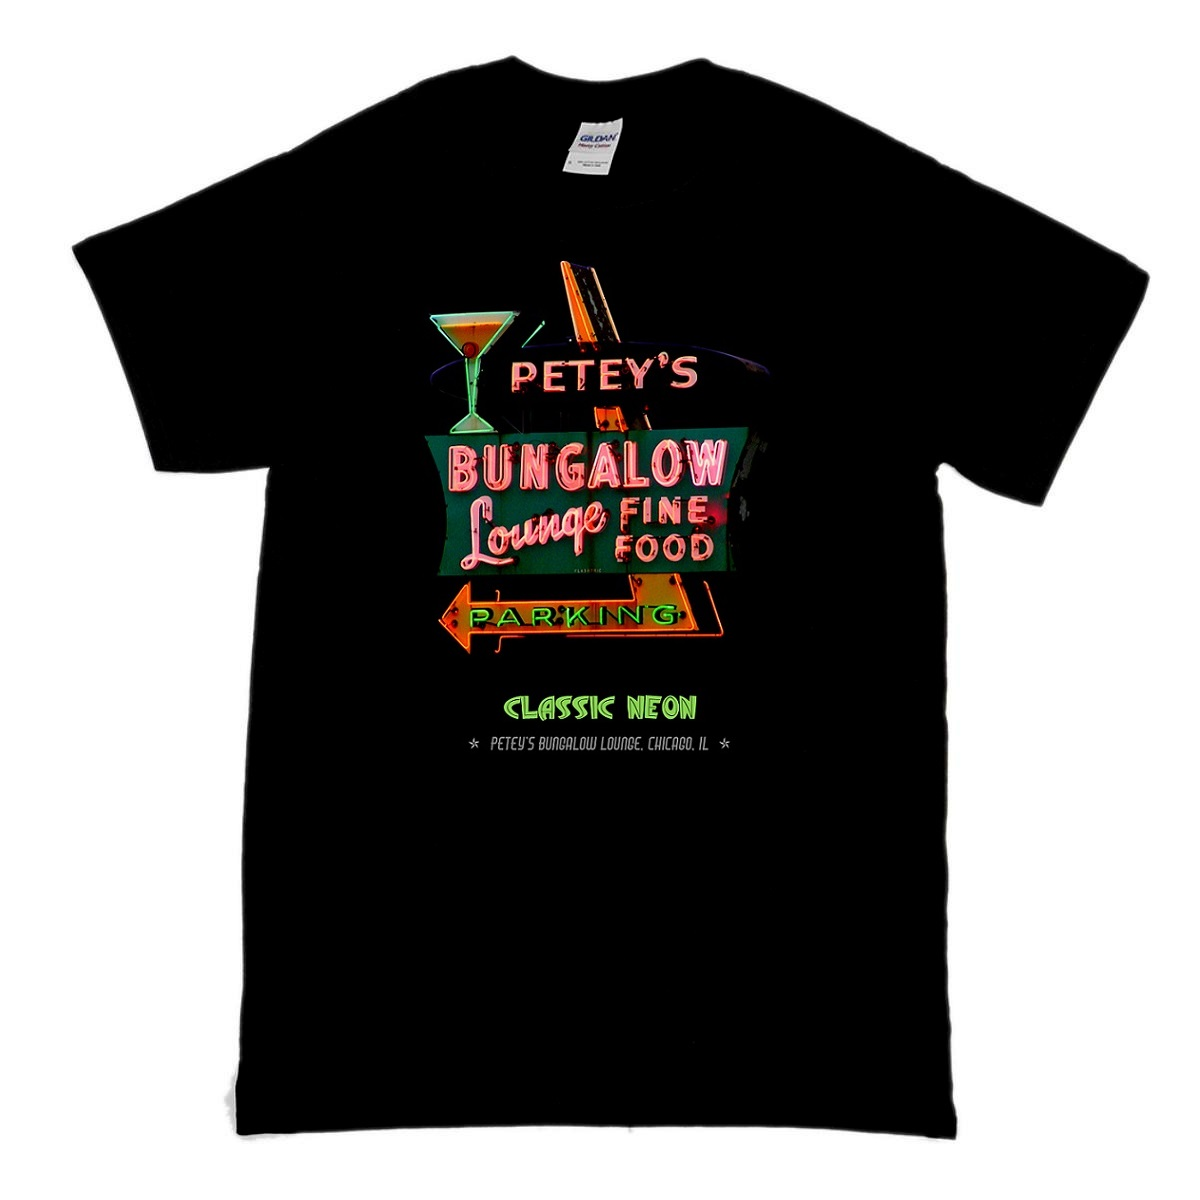 This is a t-shirt of a fantastic roadside neon sign for Petey's Bungalow Lounge in Chicago